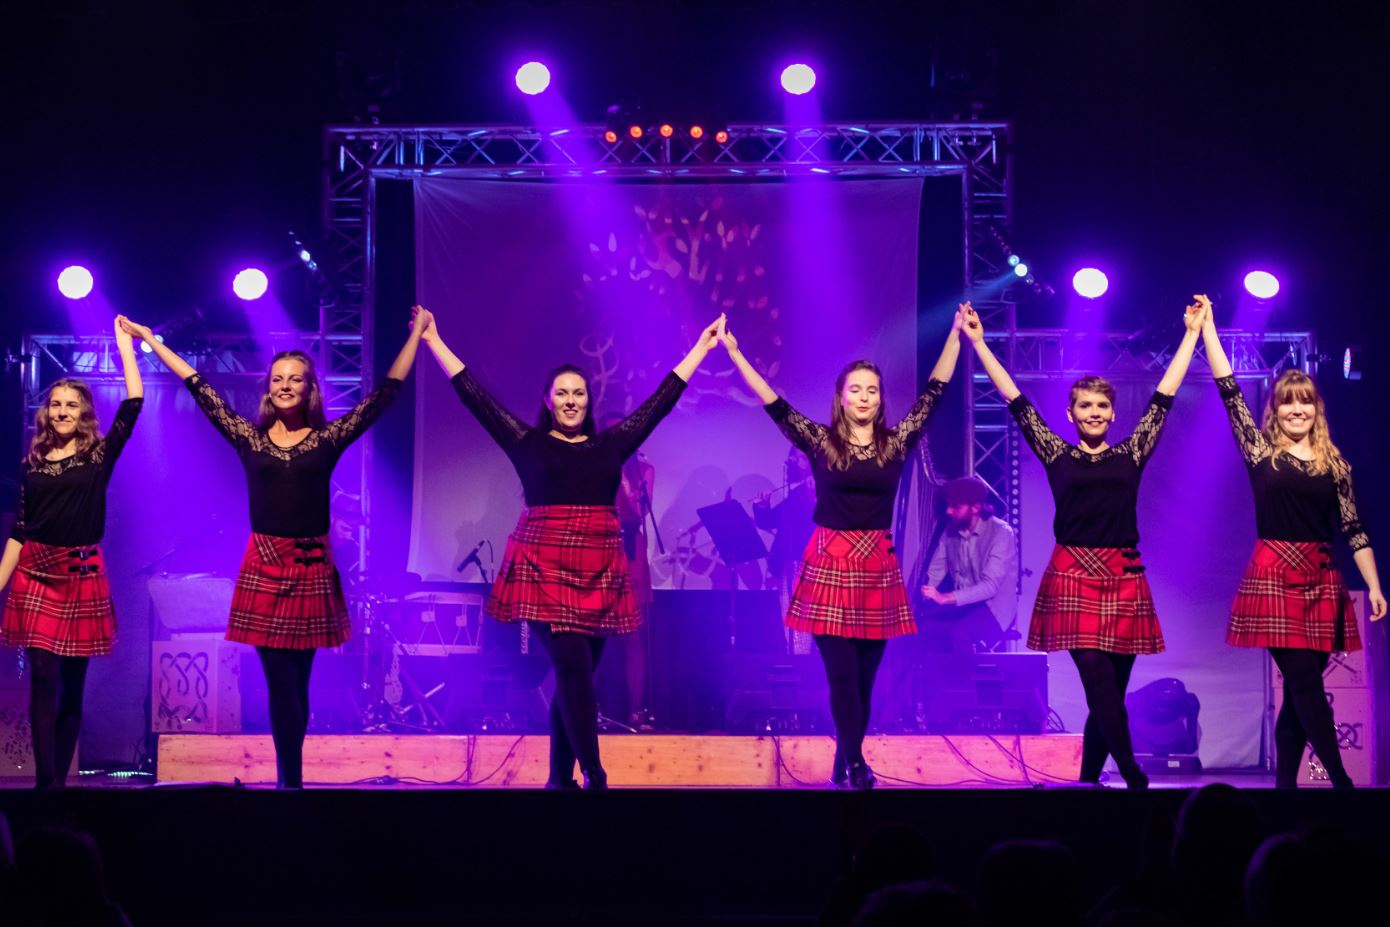 Danse irlandaise Spectacle What's the Craic? Ghillie's groupe de musique Irish and Folk music